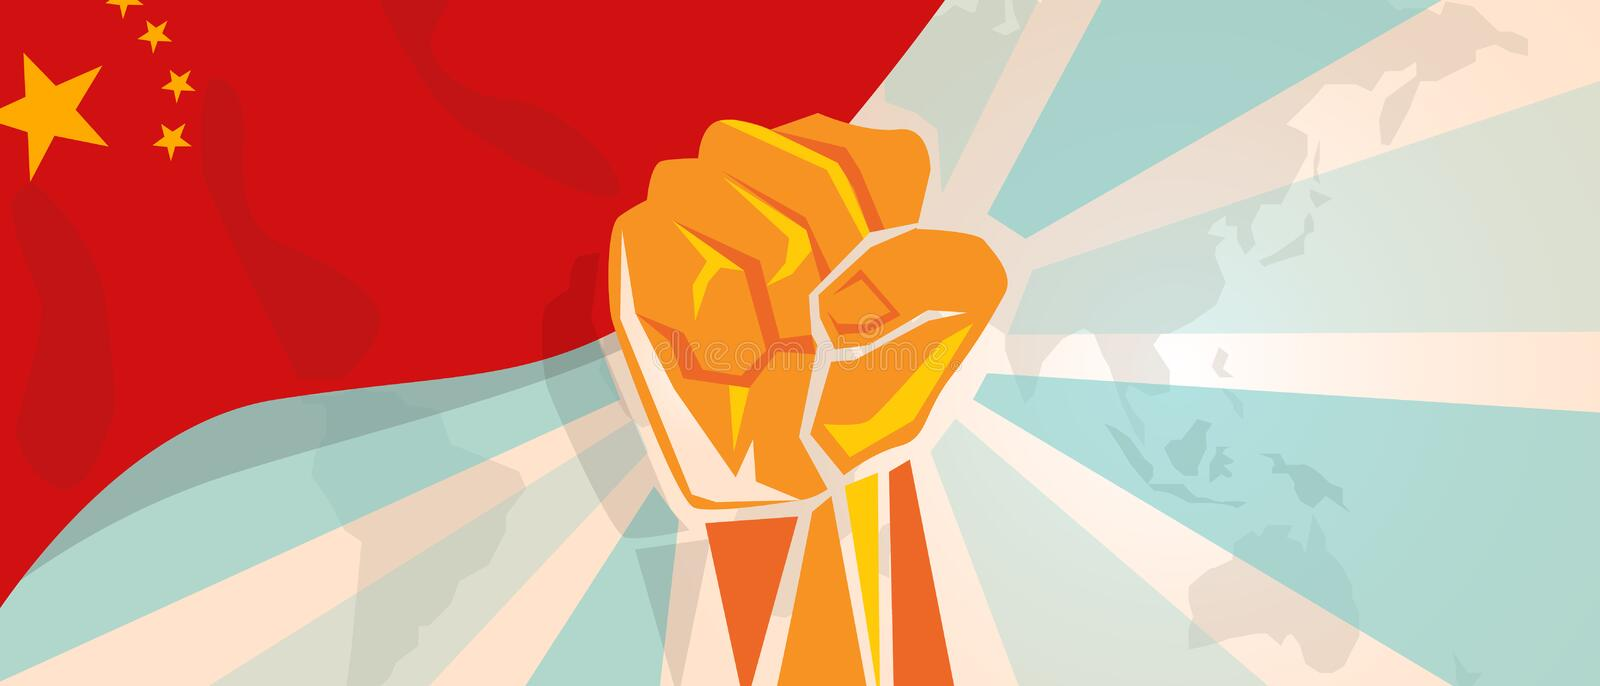 China fight and protest independence struggle rebellion show symbolic strength with hand fist illustration and flag royalty free illustration